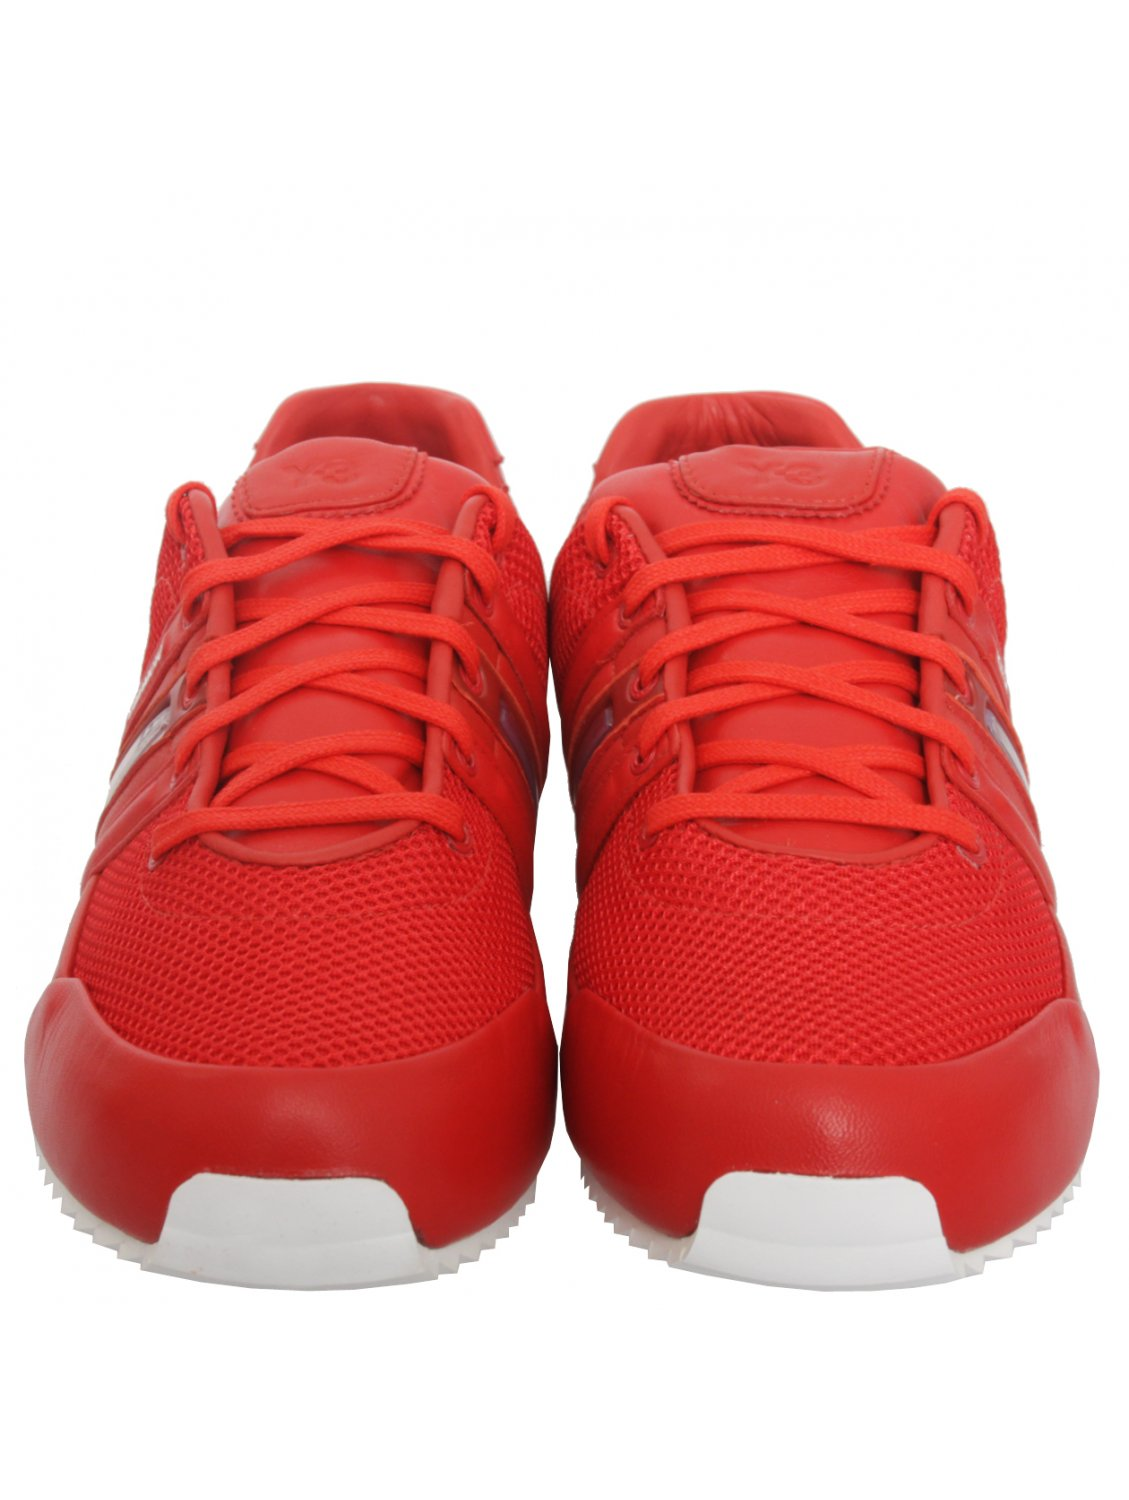 8d81de50292f Y-3 Sprint Trainers Red in Red for Men - Lyst